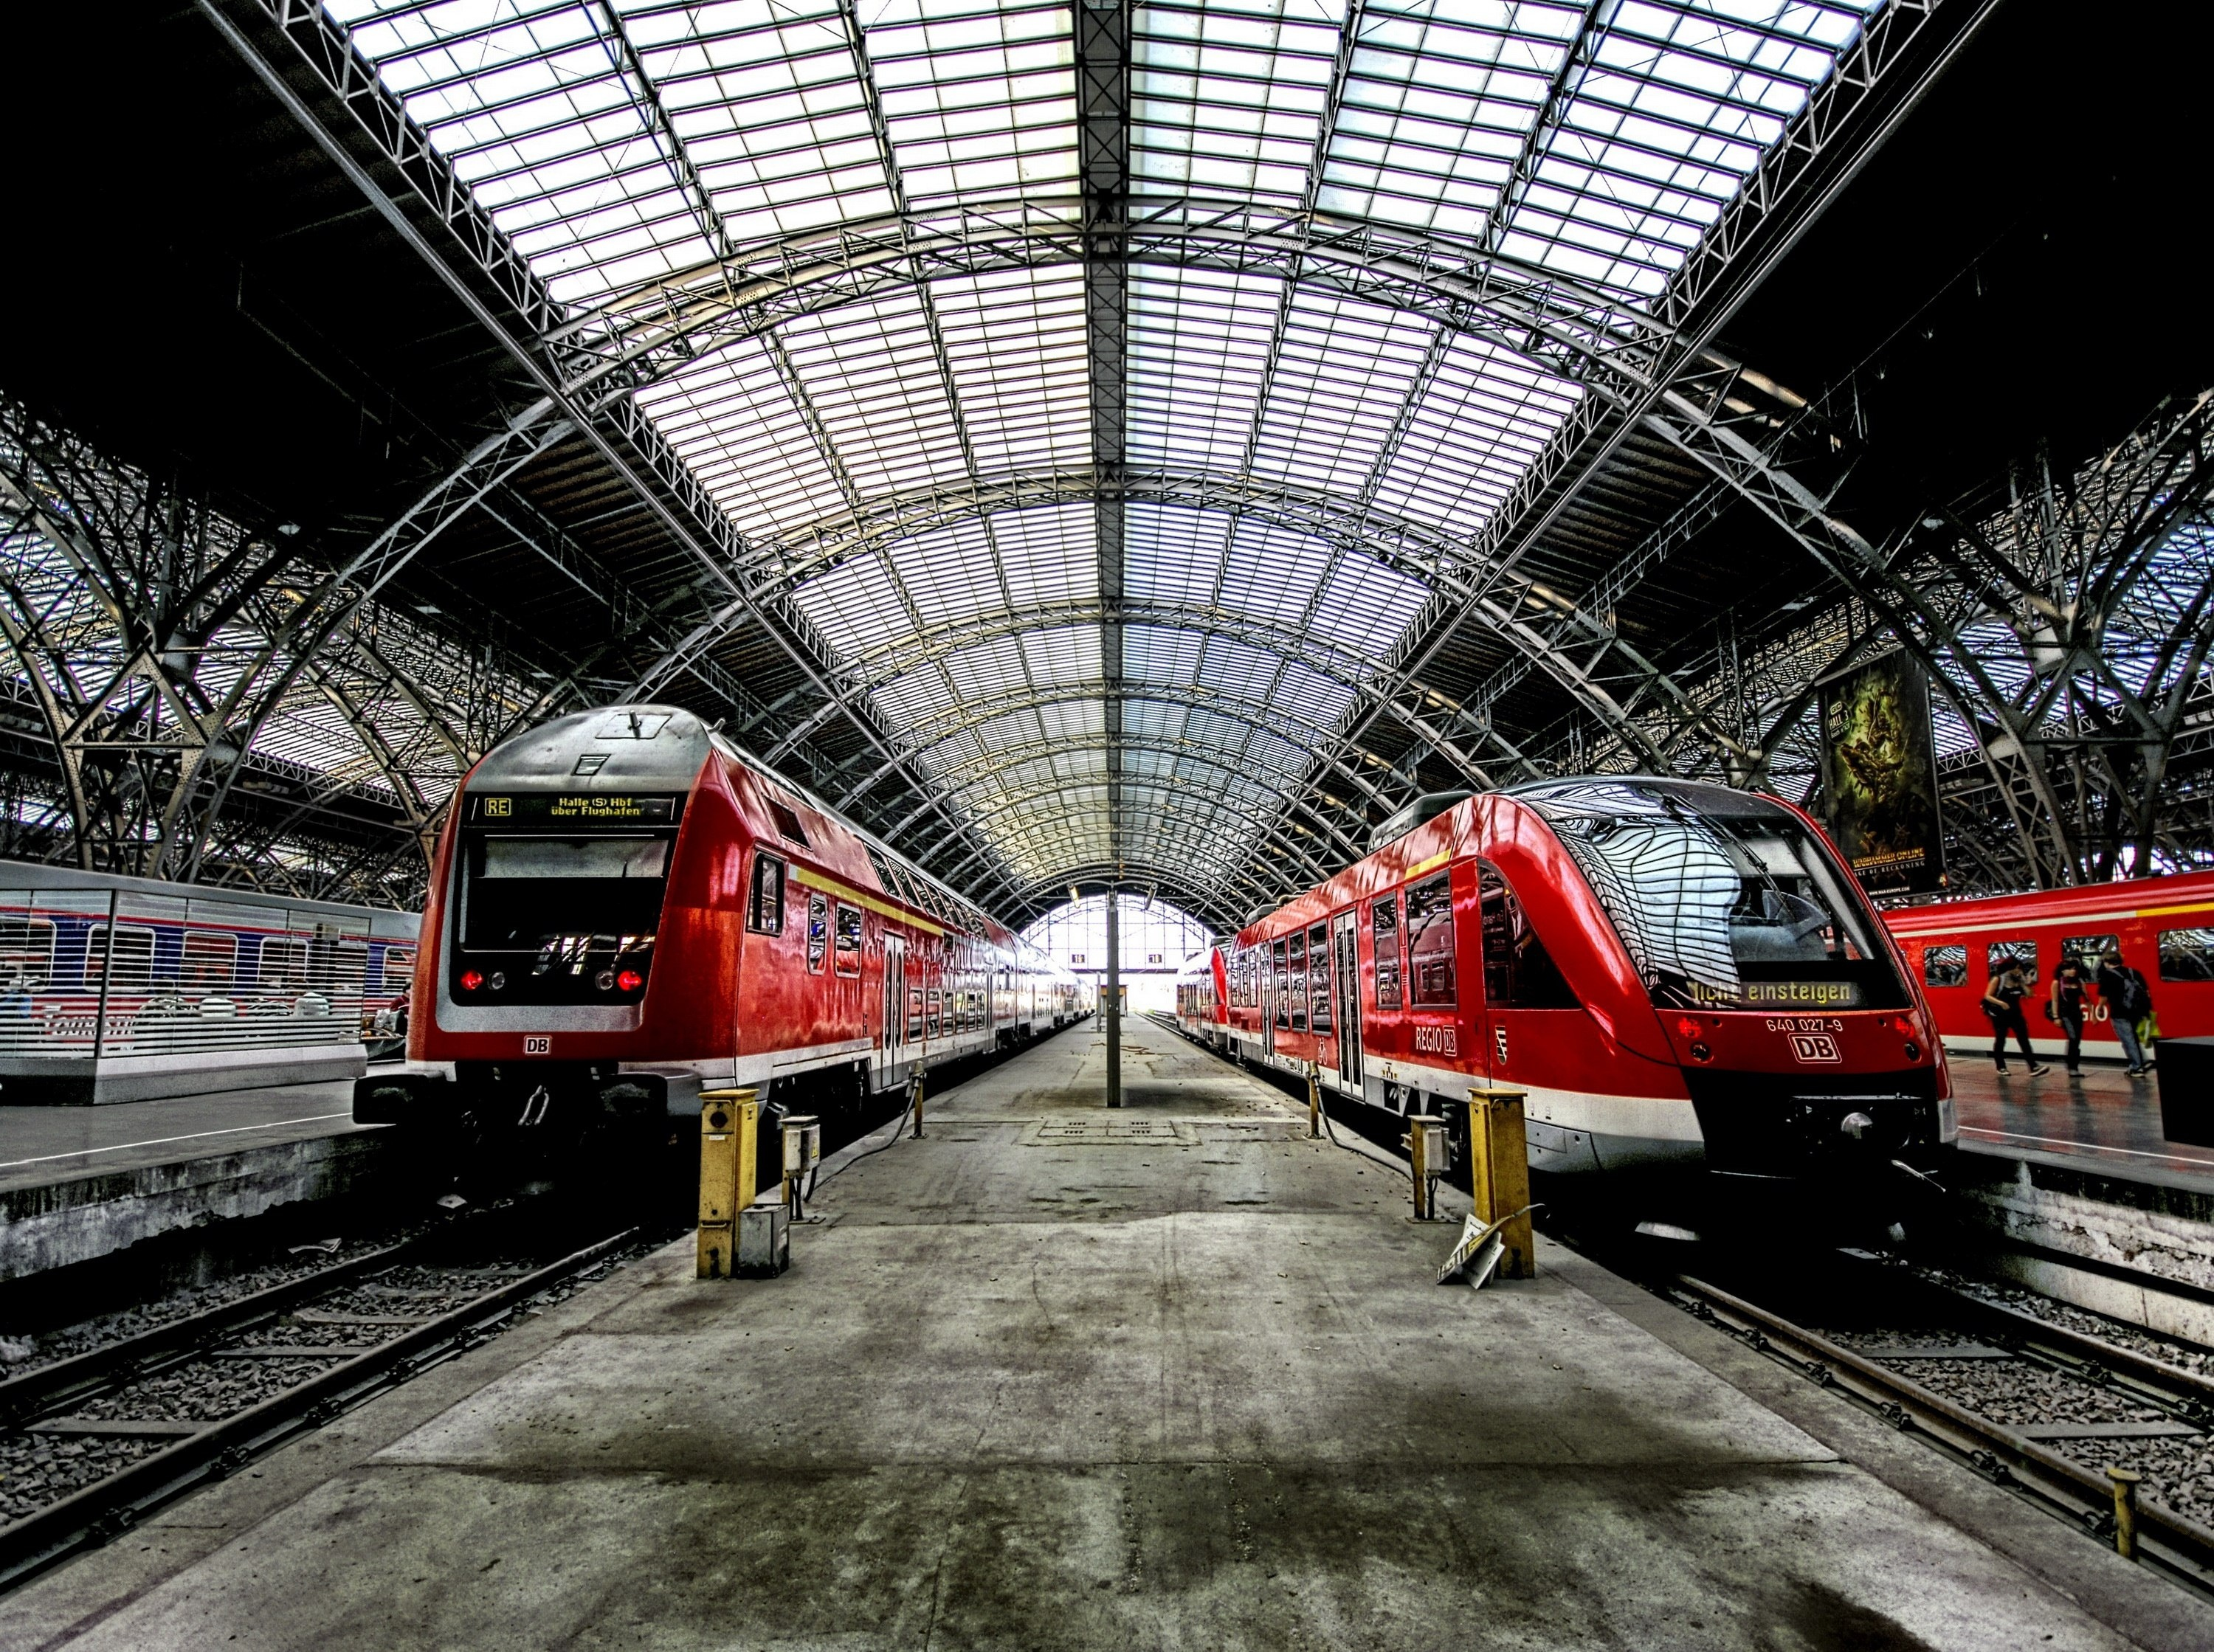 21 Train Station Hd Wallpapers Background Images